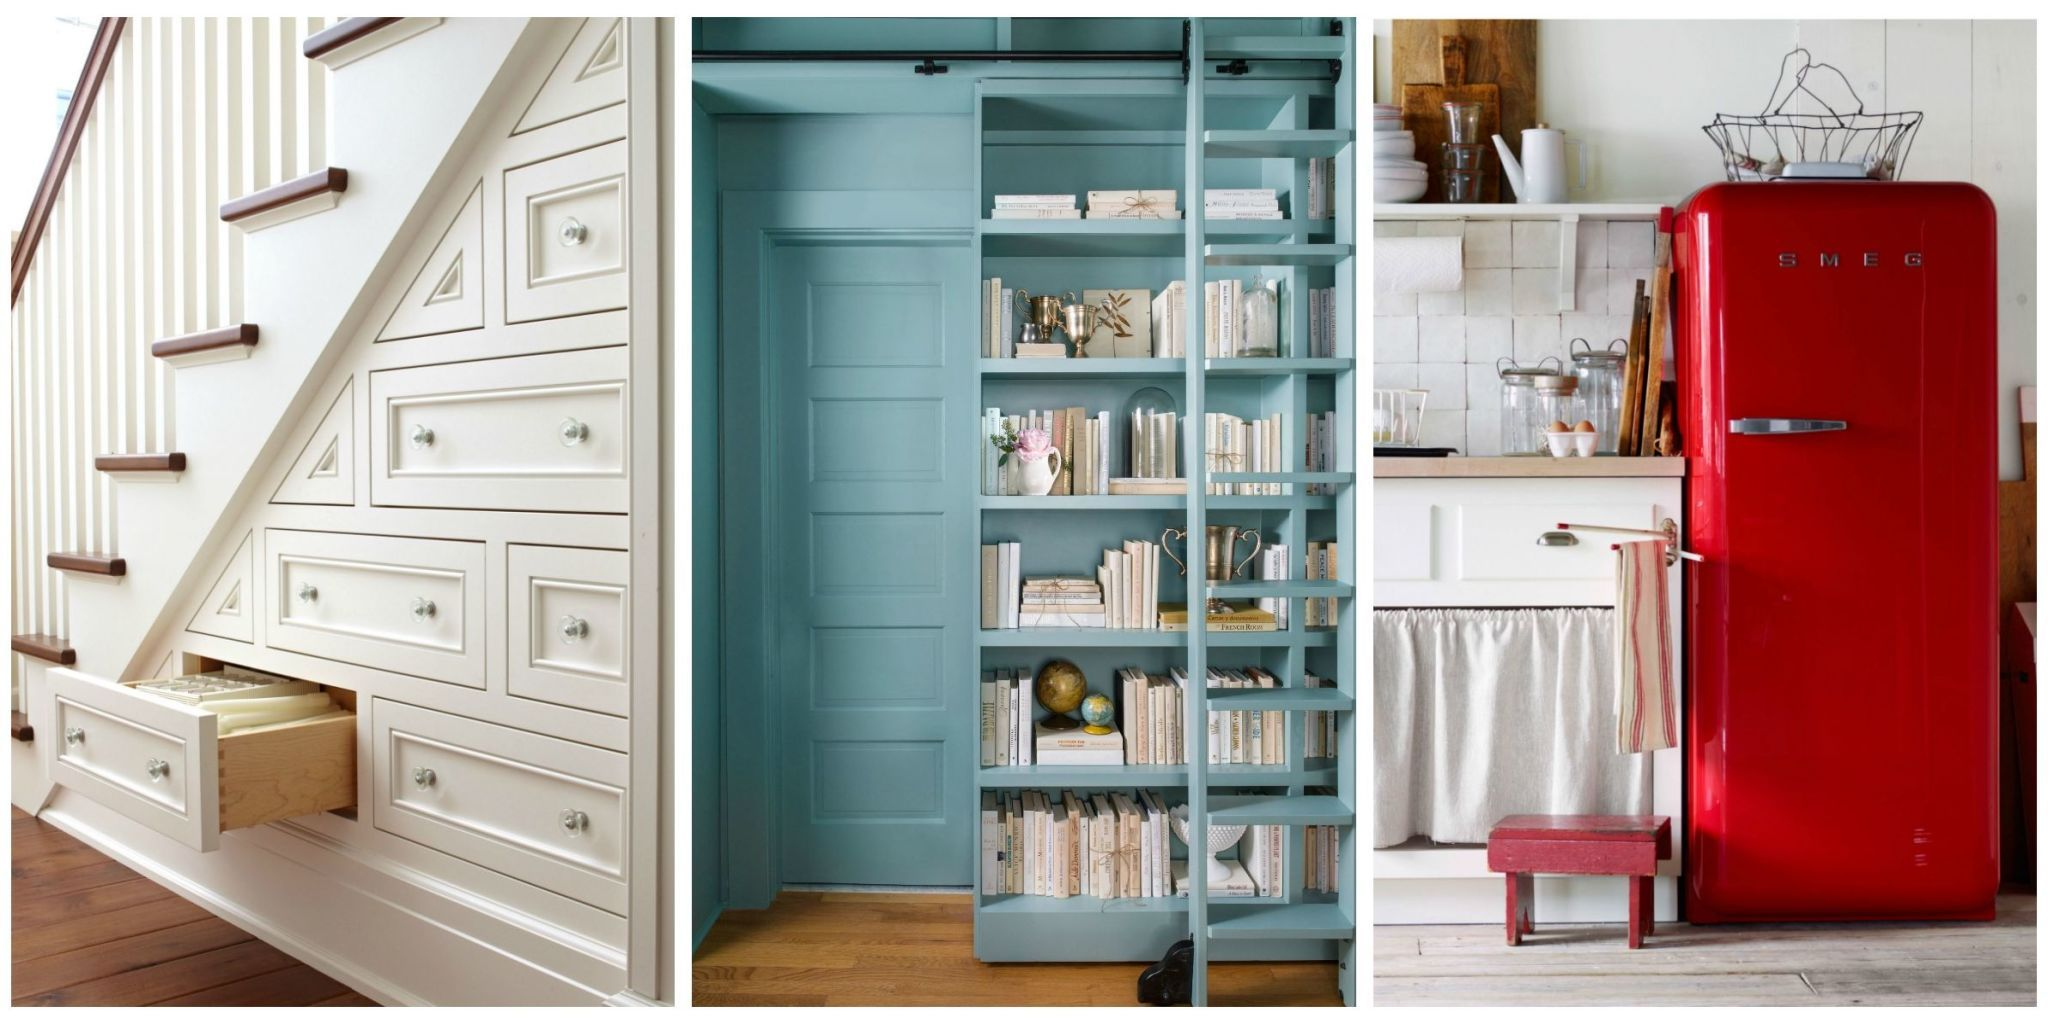 These small space decorating ideas storage solutions and smart finds will help you maximize each square foot regardless of the size of your house. & 17 Small Space Decorating Ideas \u2013 Organization for Small Rooms